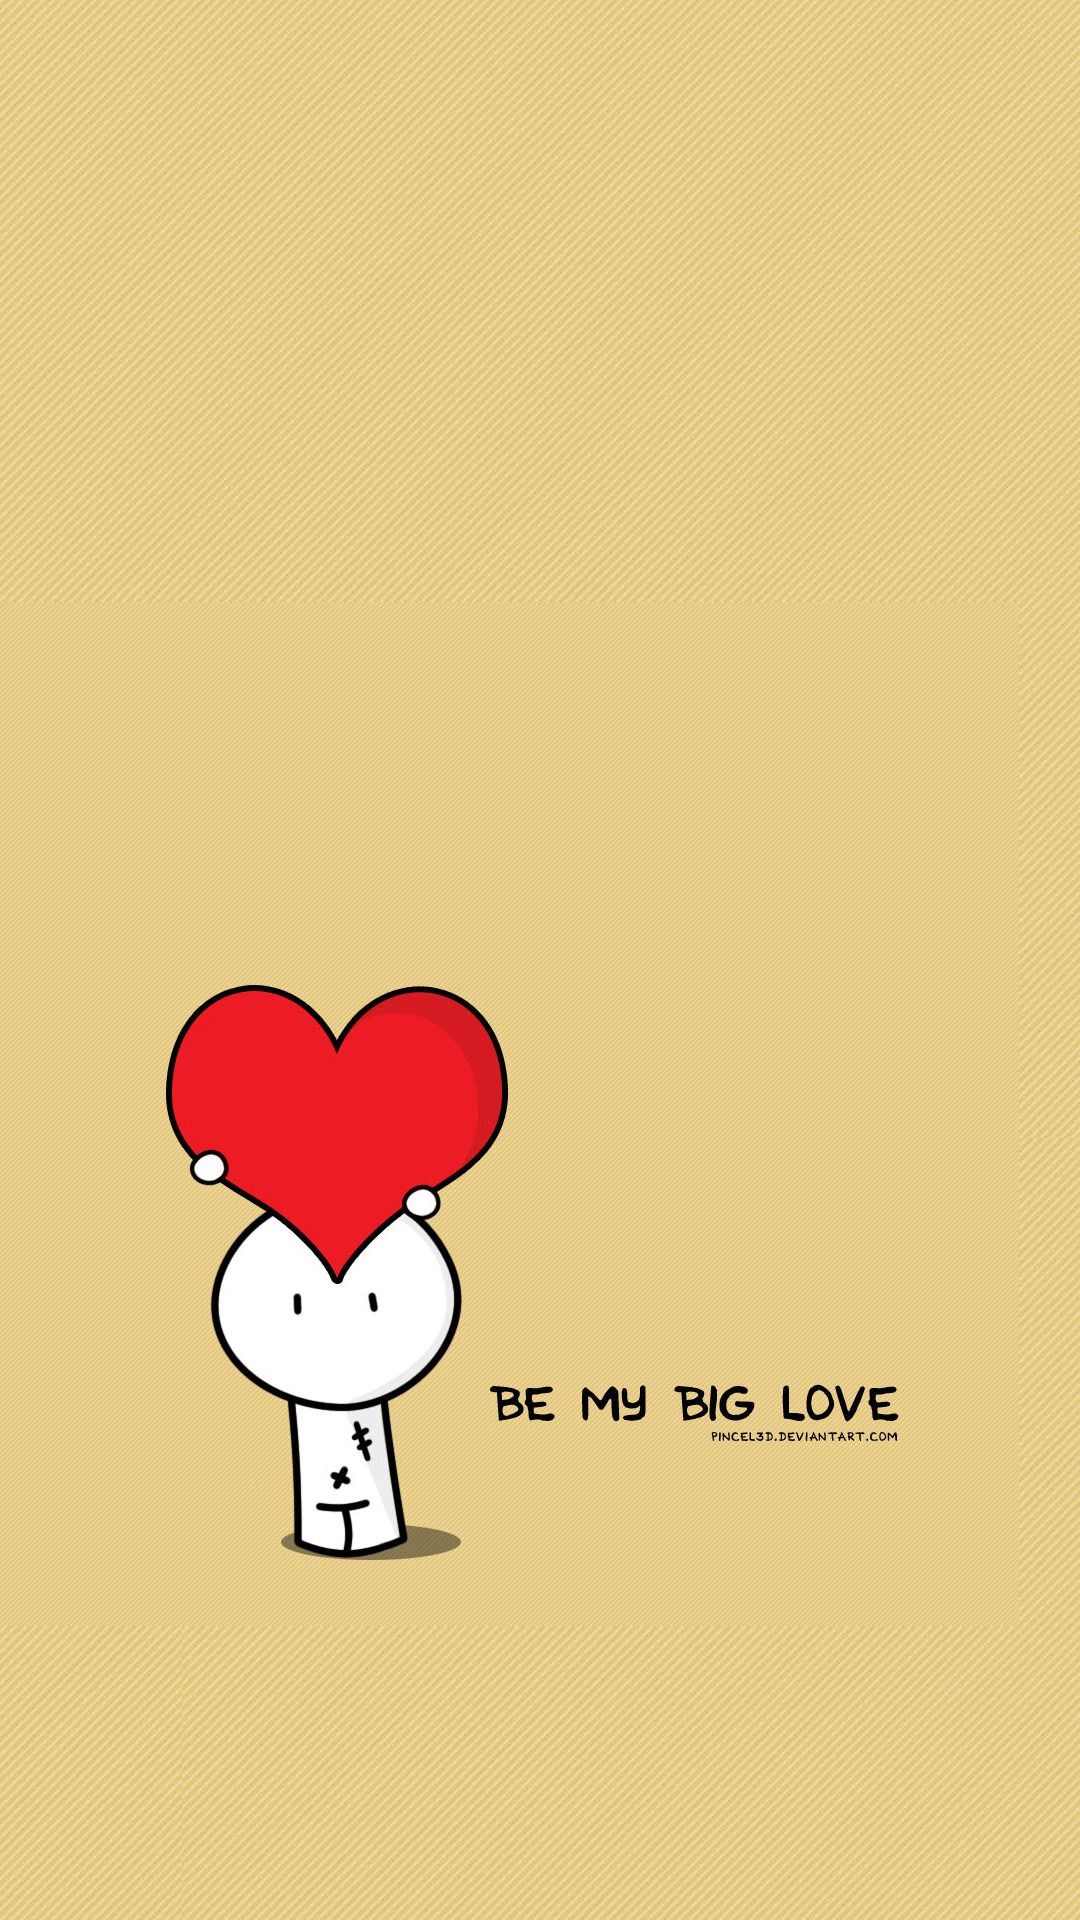 Wallpaper iphone cute love - Be My Big Love Valentines Illustration Iphone 6 Plus Wallpaper